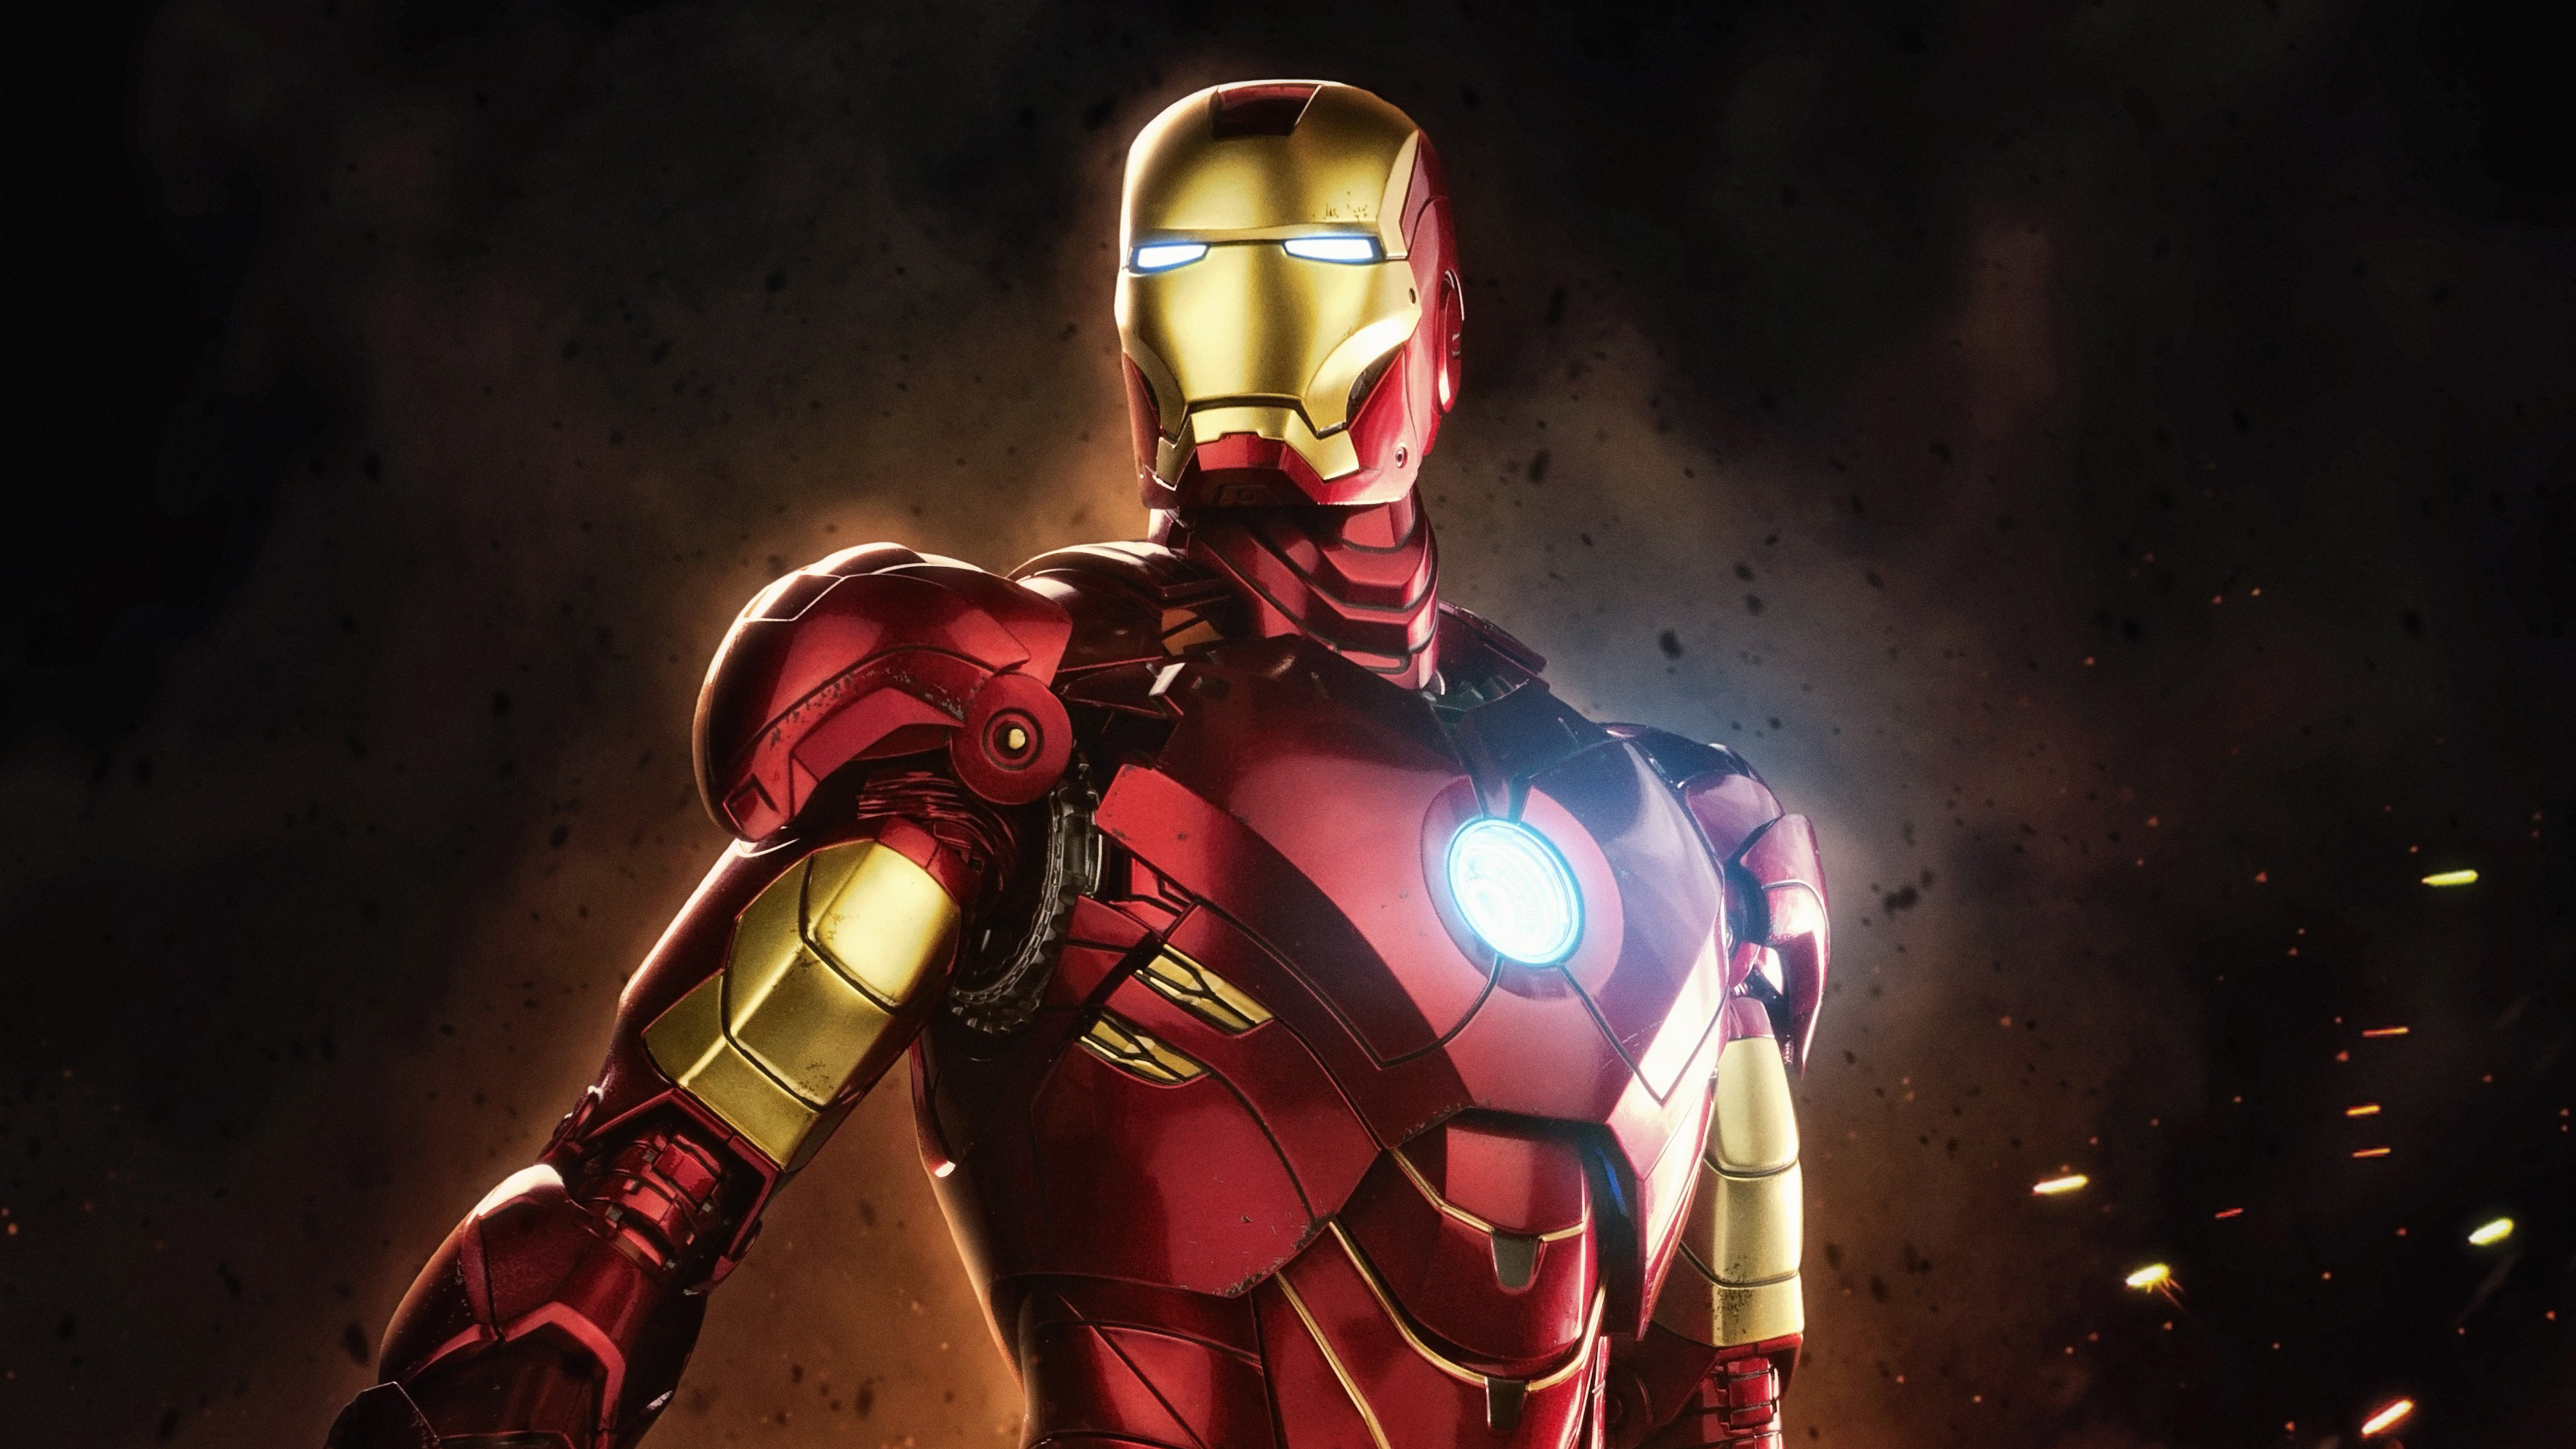 2048x1152 4k Iron Man 2018 2048x1152 Resolution Hd 4k